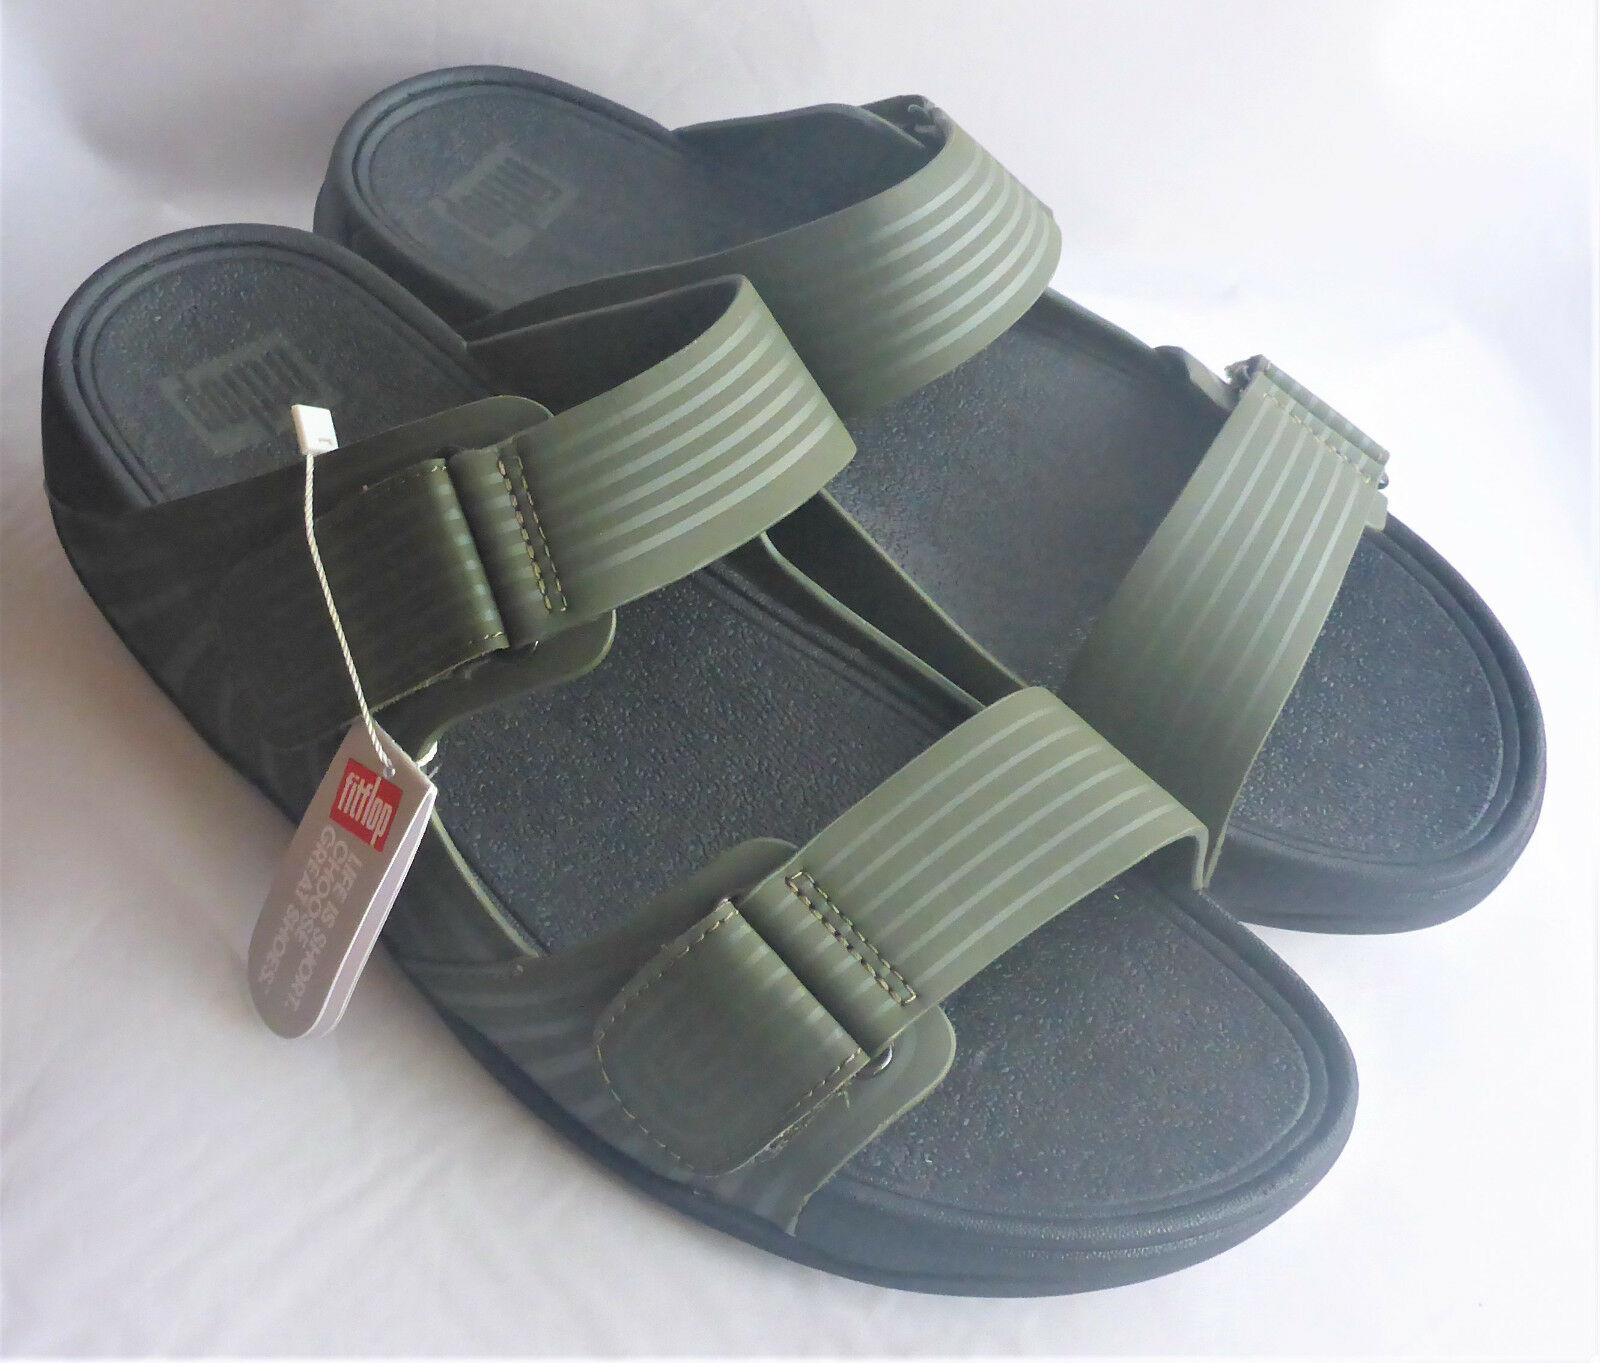 Fitflop Gogh Moc Pool  Slide Adjustable Everglades Green  Pool Uomo Sandales Beach Sz 11 36b3fa